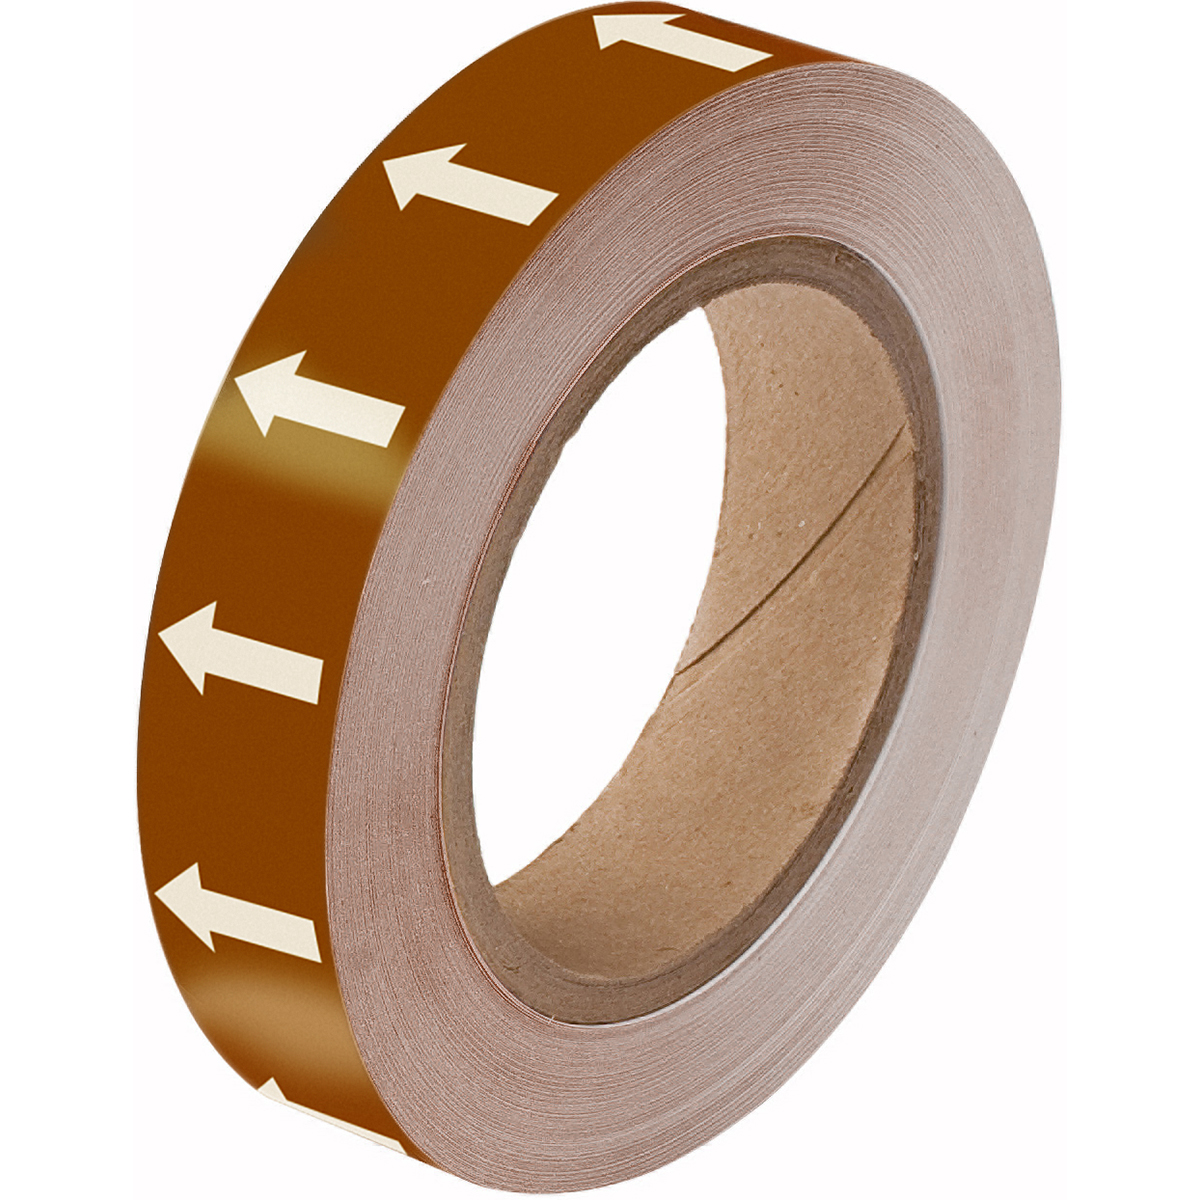 White on Brown Directional Flow Arrow Tape